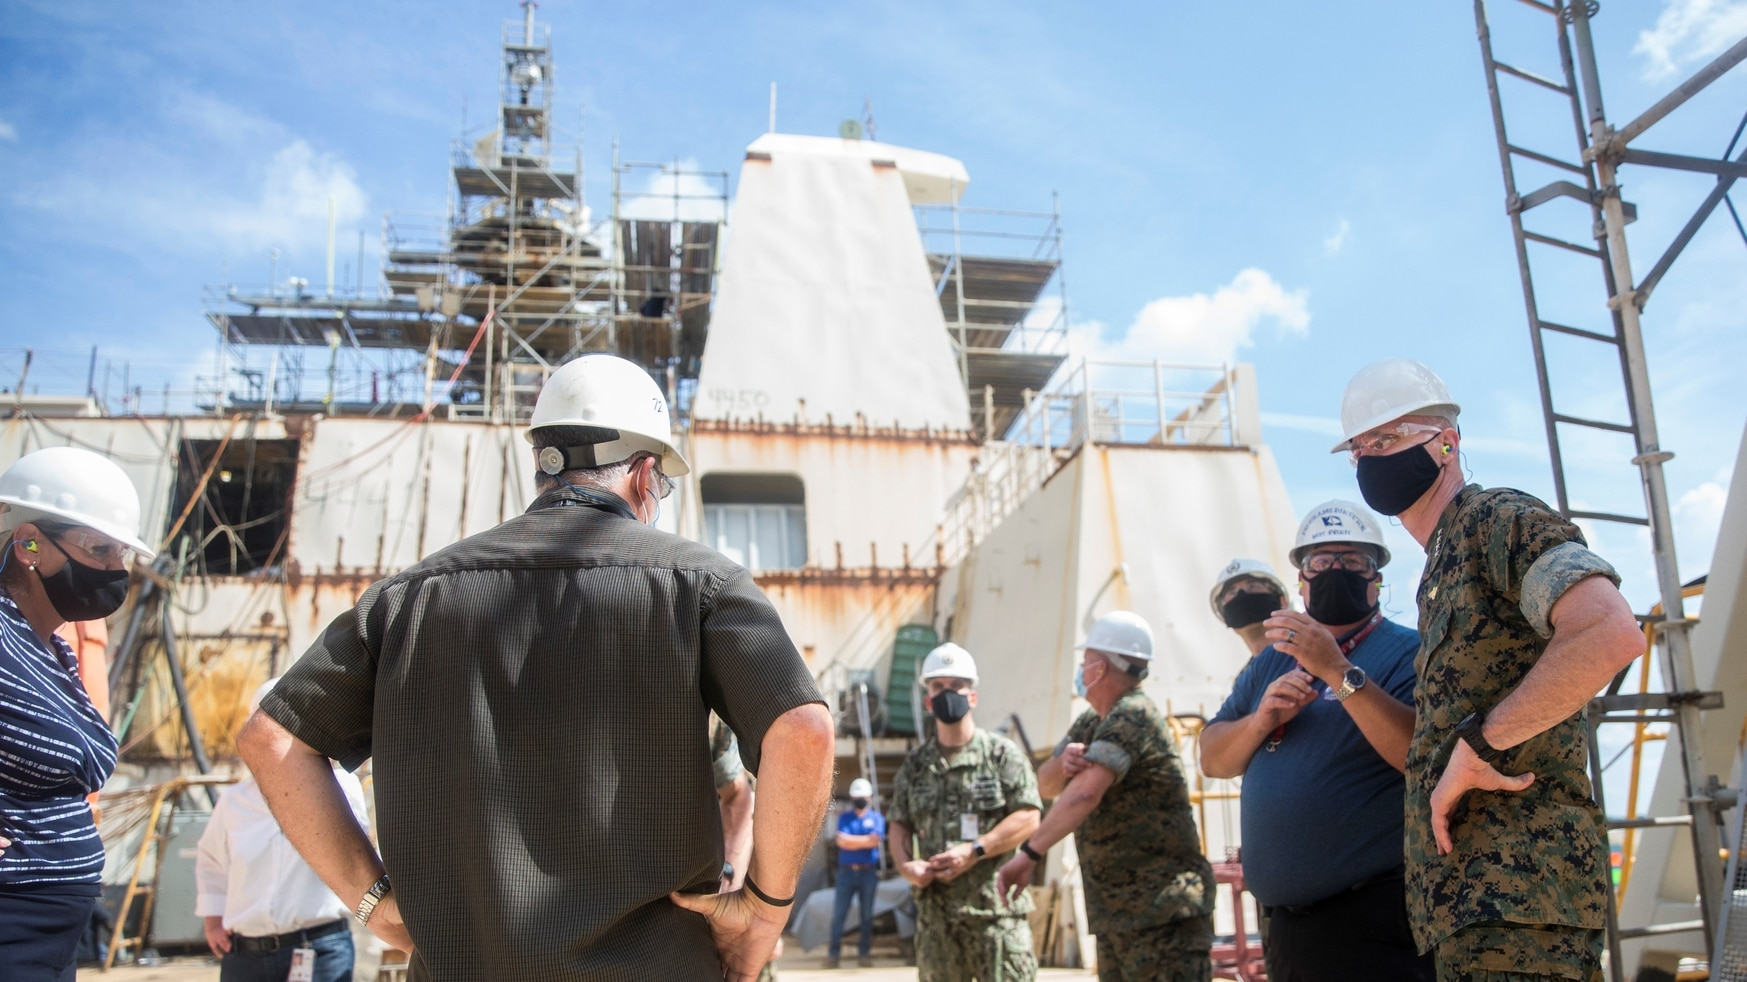 Assistant Commandant of the Marine Corps Gen. Gary Thomas receives a tour of the Huntington Ingalls Industries shipyard in Pescagola, Miss., on Aug. 13, 2020. He was assessing capabilities and production of multiple Navy and Marine Corps projects during the novel coronavirus pandemic. (Sgt. Wesley Timm/U.S. Marine Corps)